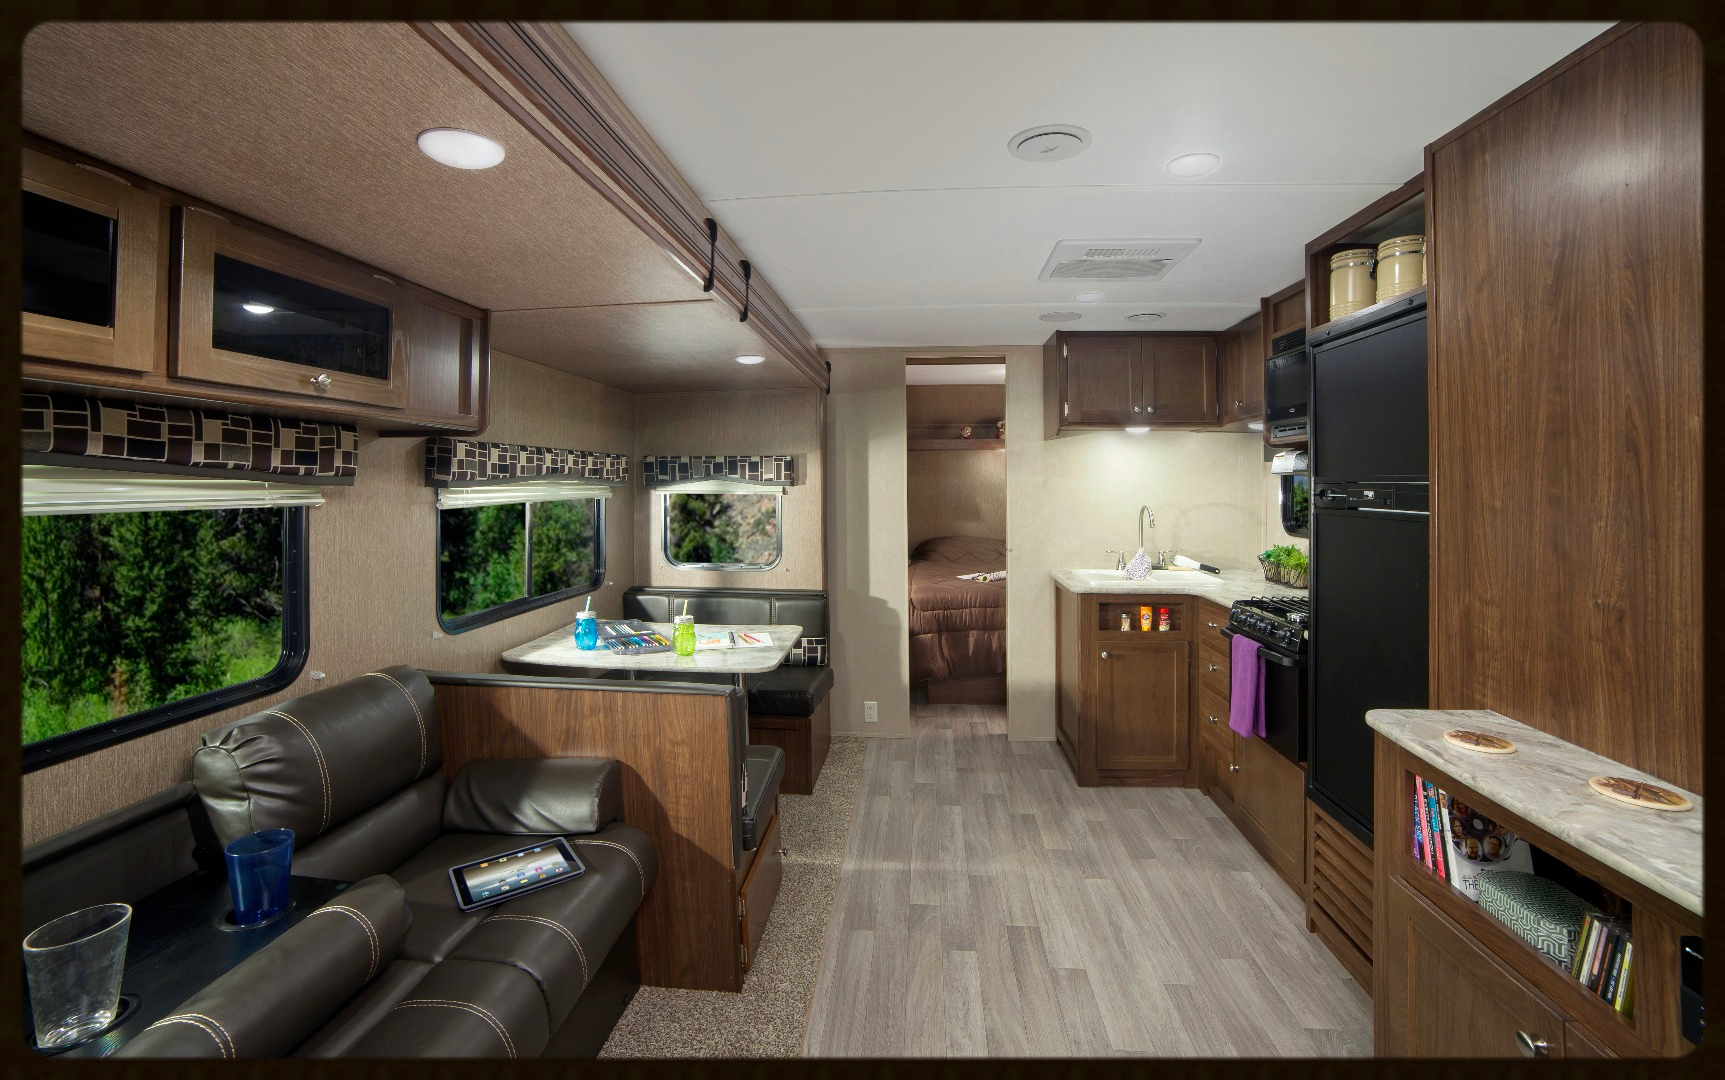 Coleman RV 285Bh Travel Trailer interior